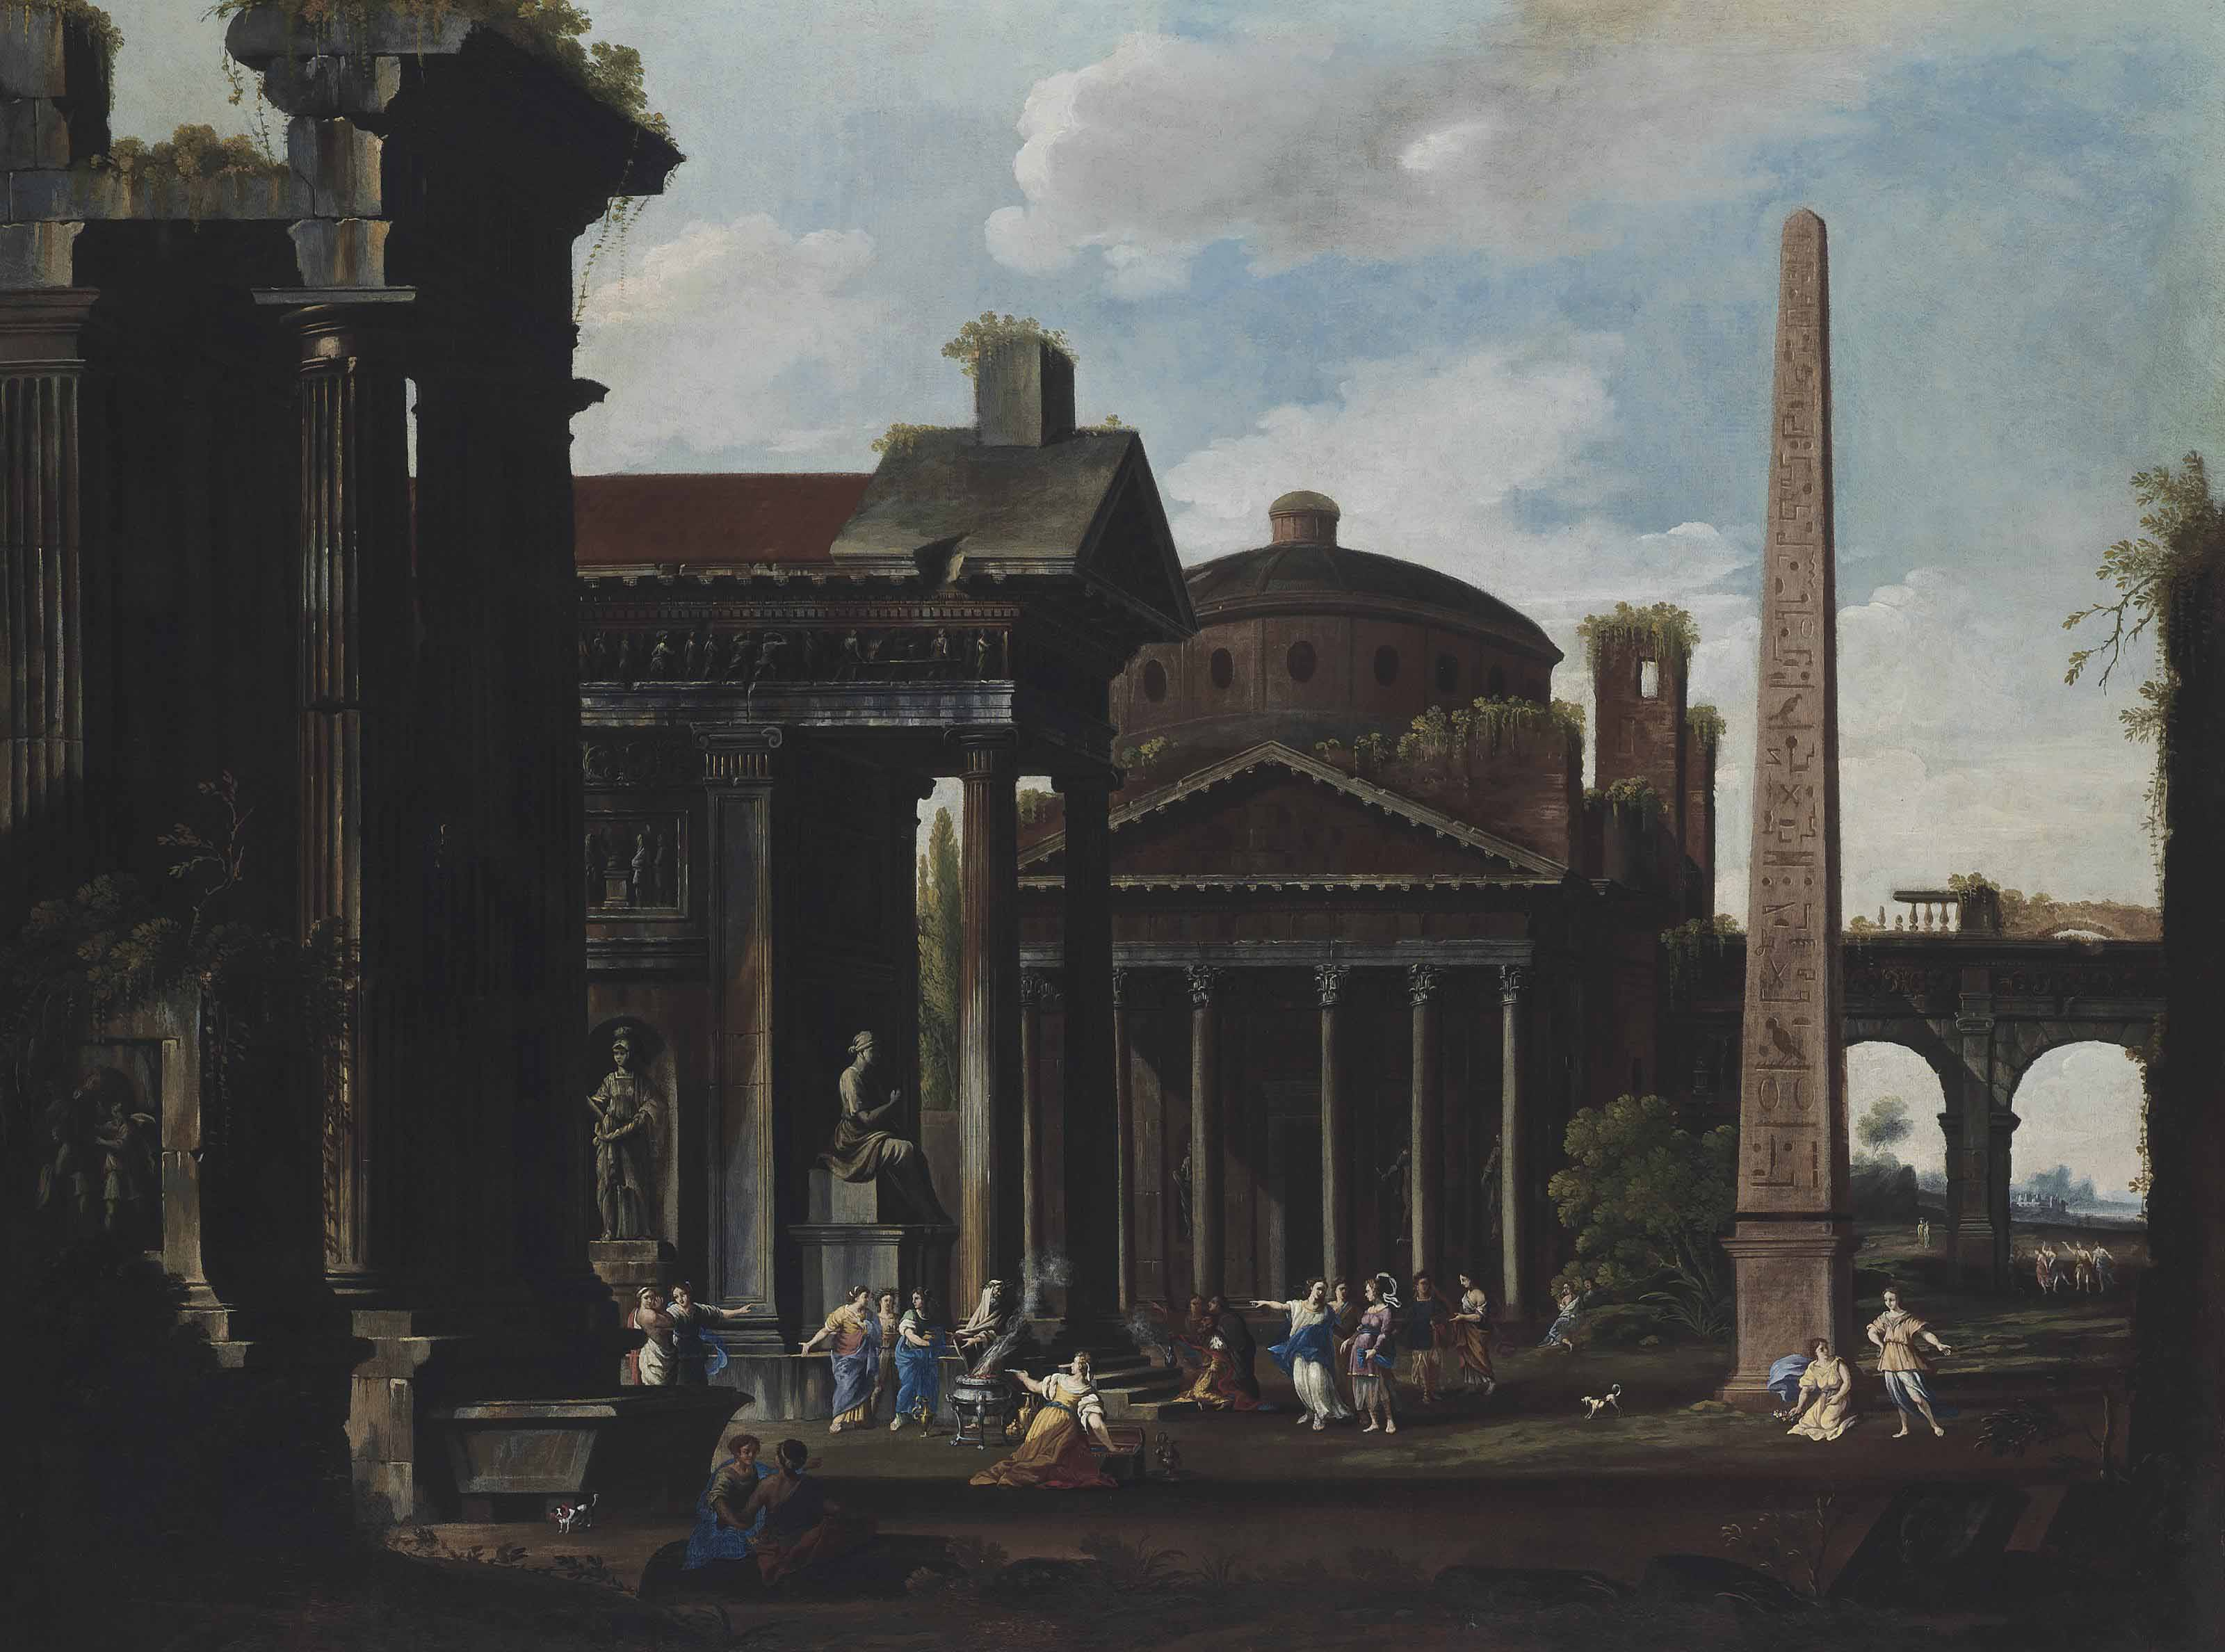 An architectural capriccio of the Pantheon and other buildings, with figures making a sacrifice to a goddess, figures conversing and dancing amongst the ruins beyond